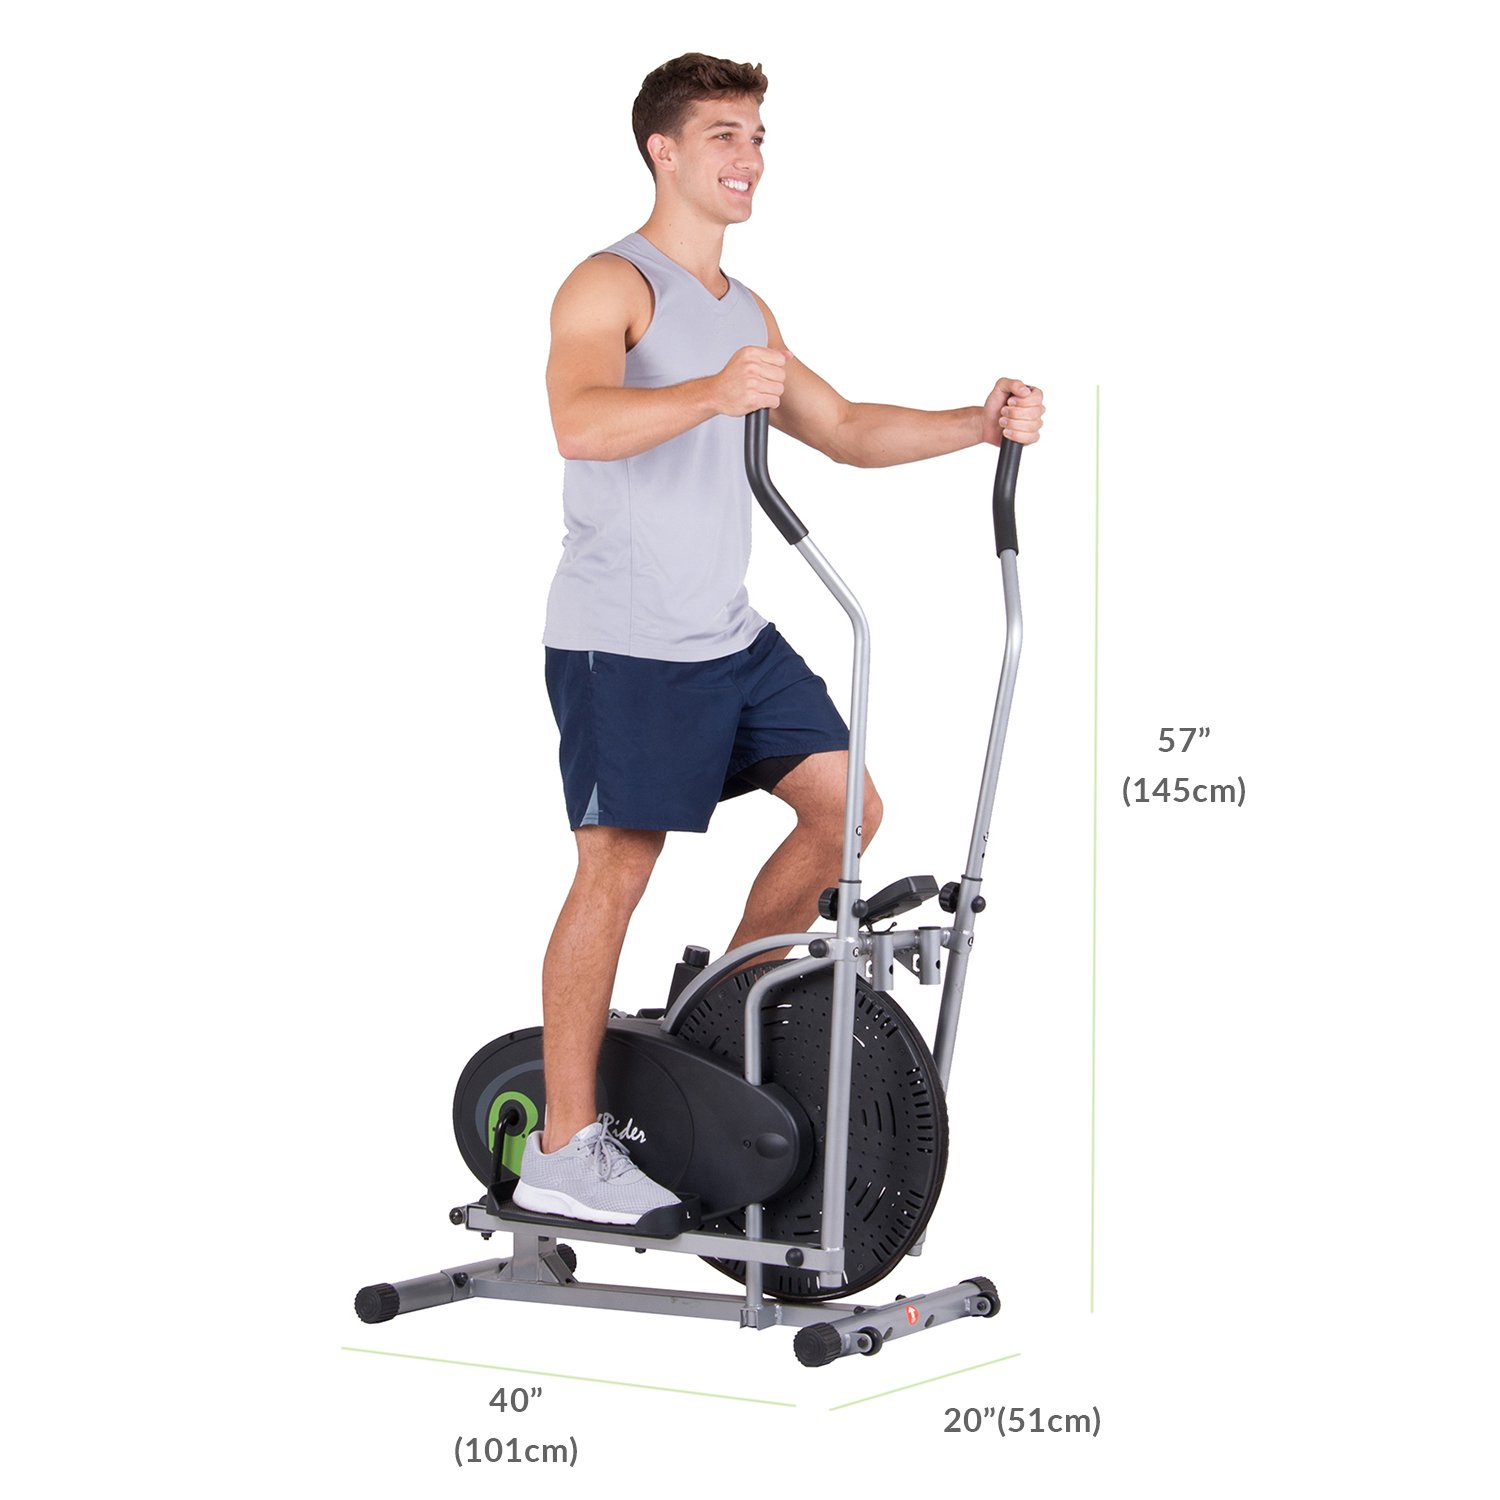 Body Rider Fan Elliptical Trainer with Air Resistance System, Adjustable Levels and Easy Computer BR1830 by Body Max (Image #2)